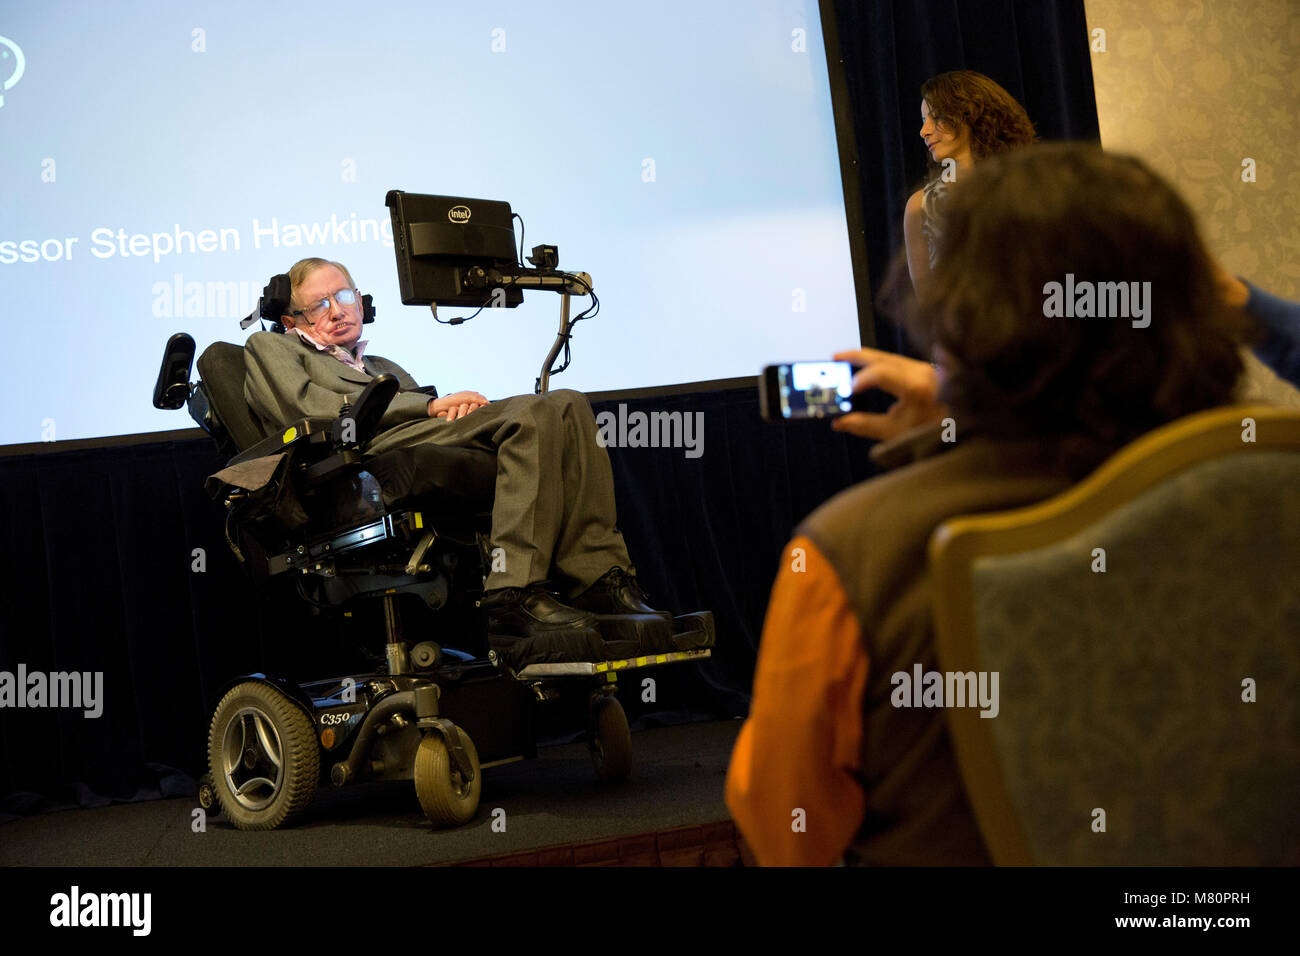 Professor Stephen Hawking speaks to media at a press conference in London 2.12.14. Stock Photo